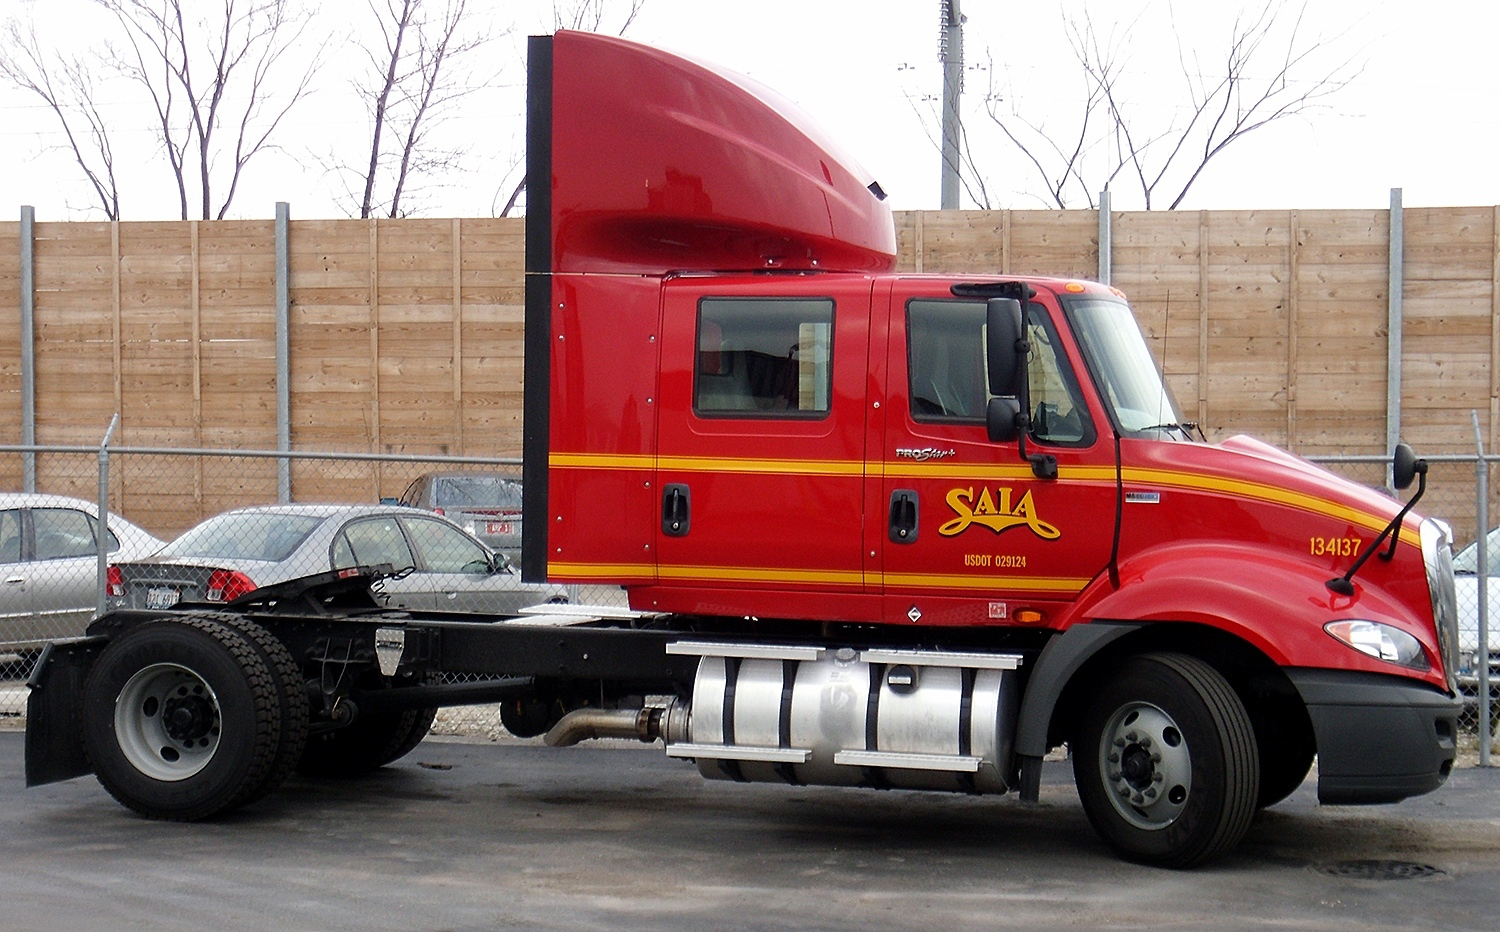 Saia's dock-to-driver training program is yielding better results in safety than hiring